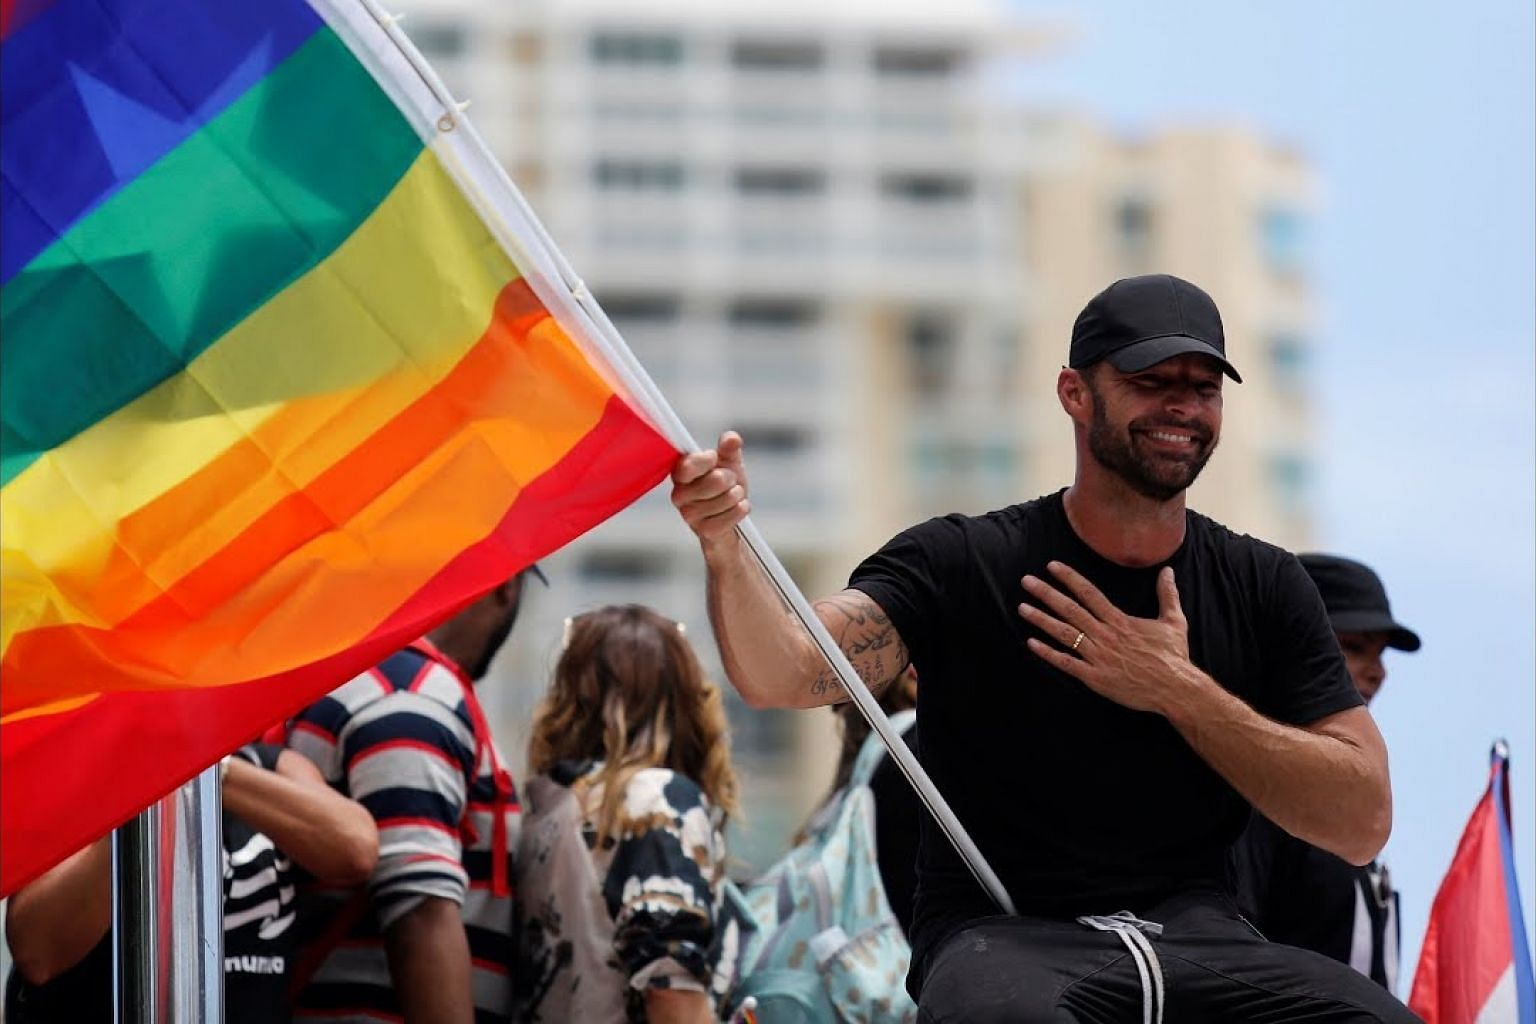 Ricky Martin, Calle 13 join anti-Rossello protests in Puerto Rico